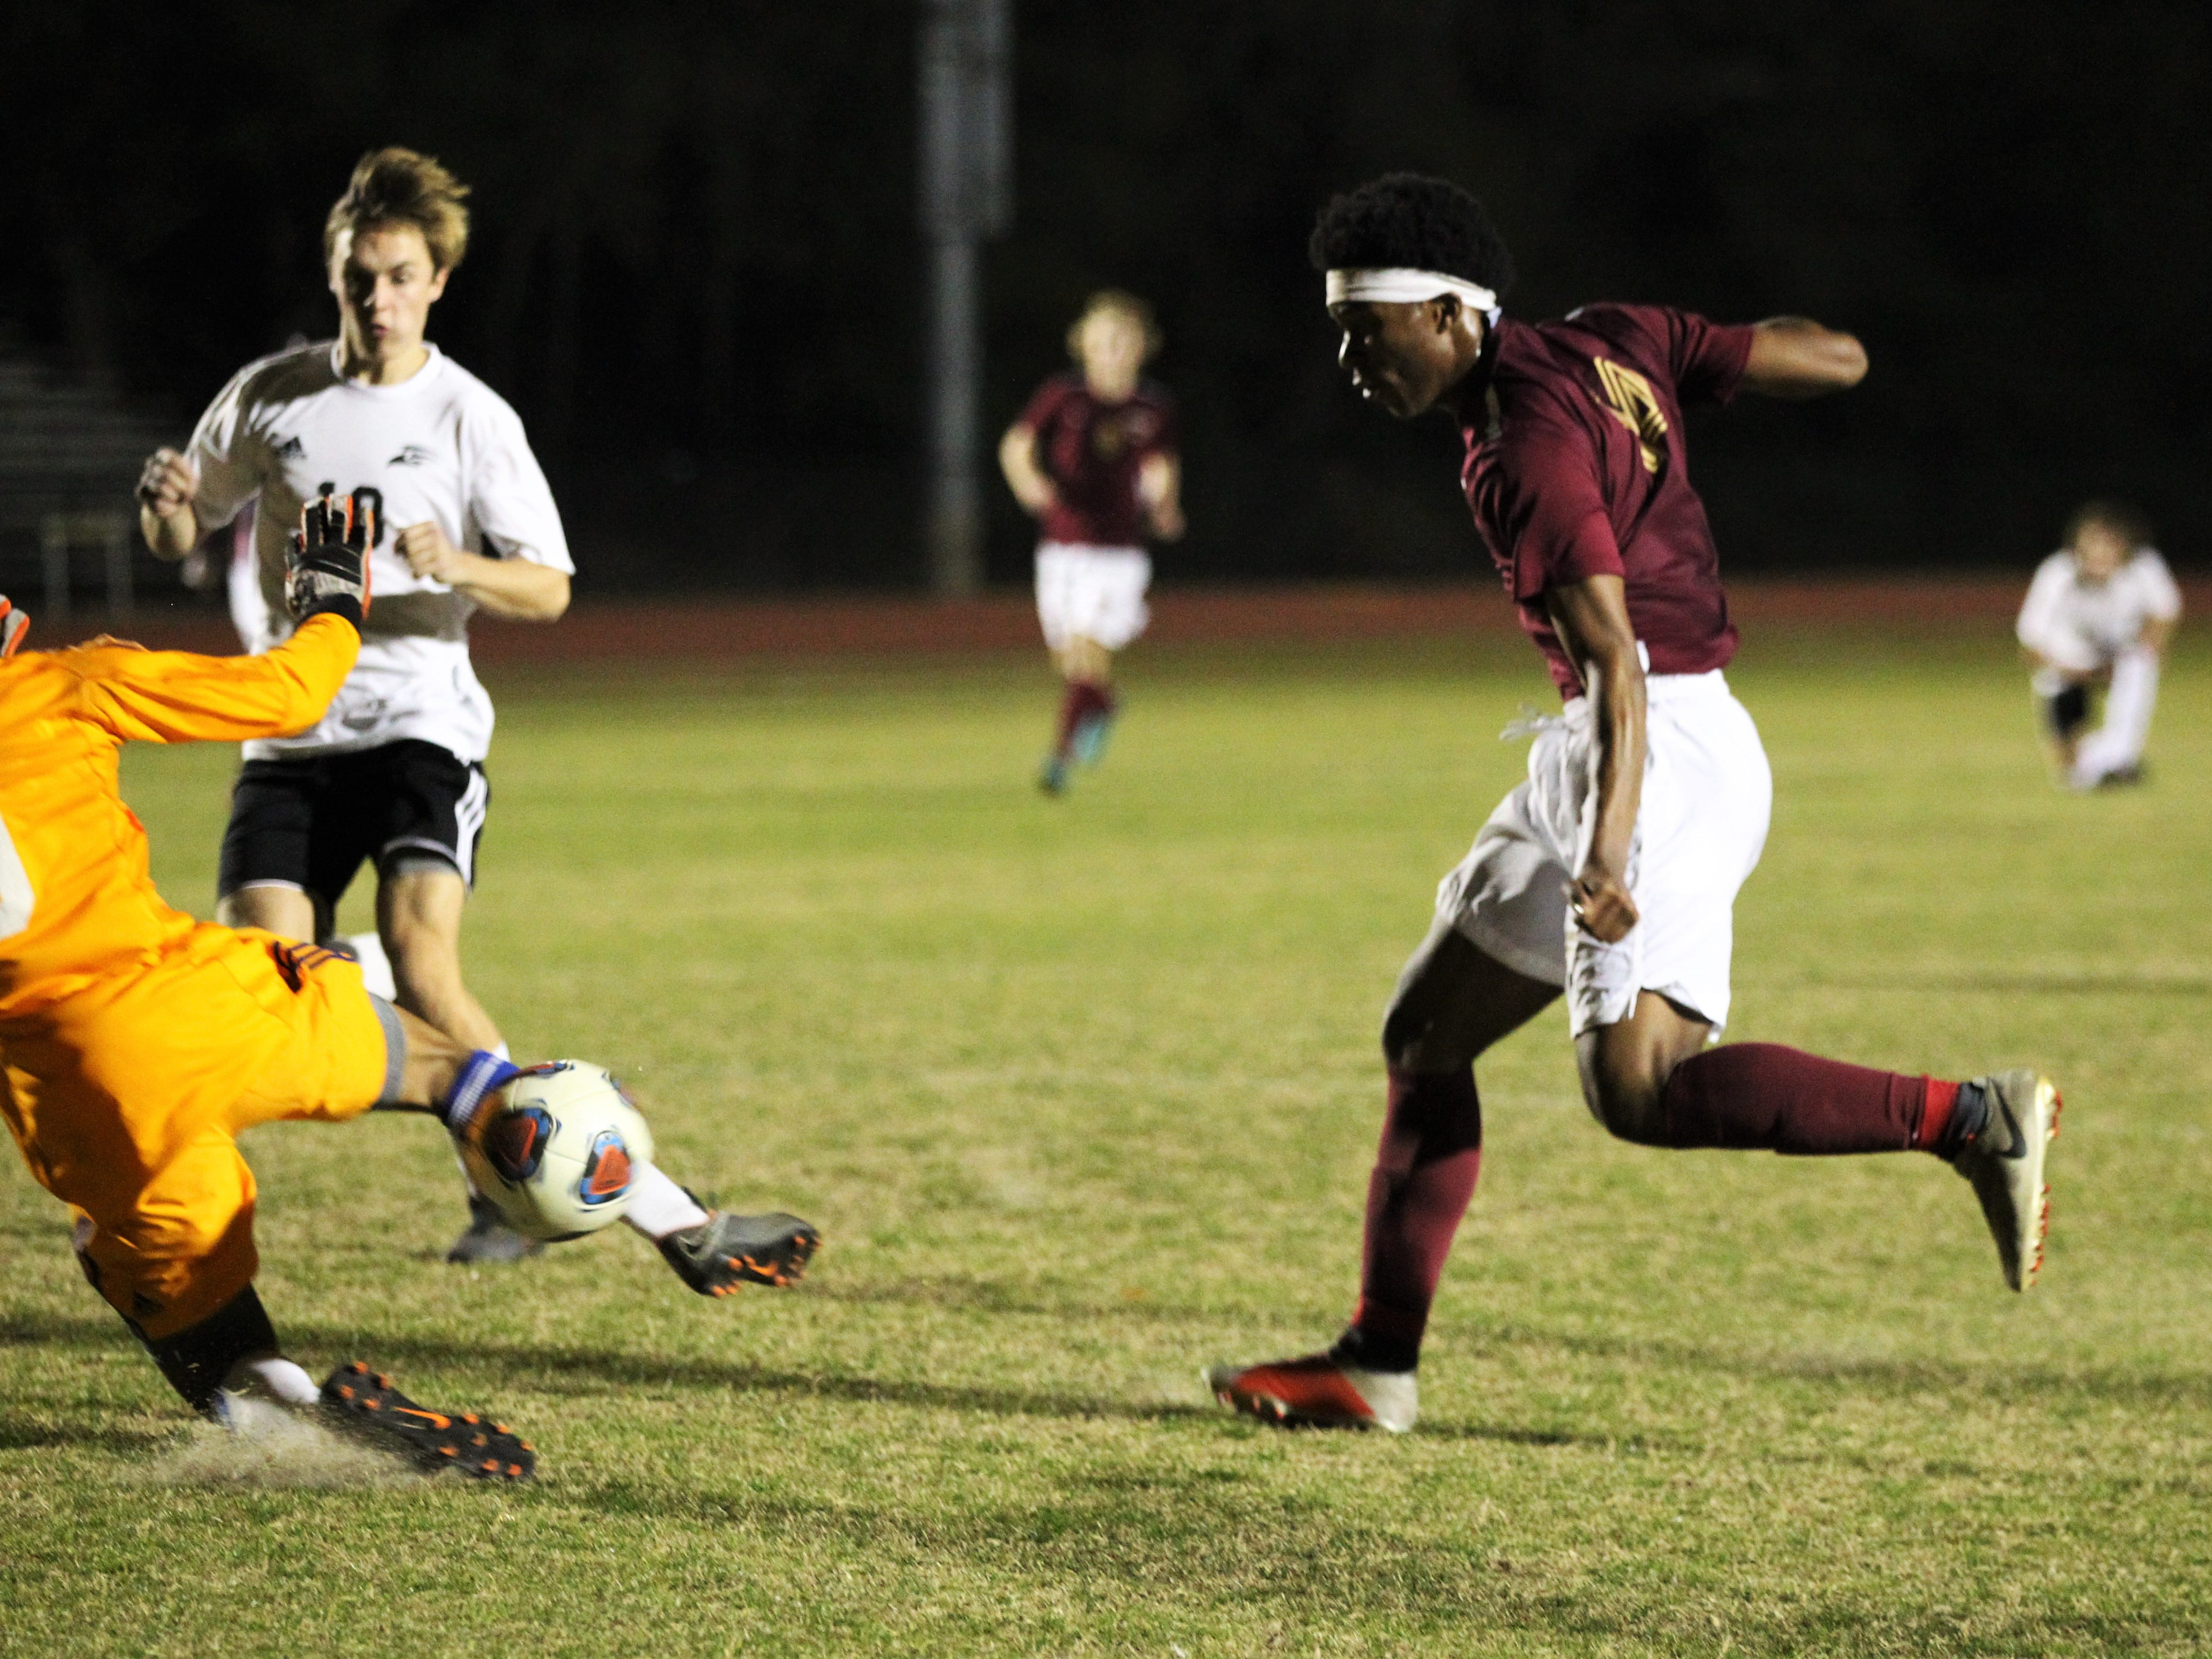 Florida High's Burnic Jordan takes a shot that is barely saved as Florida High's boys soccer team beat South Walton 2-0 during a Region 1-2A quarterfinal on Feb. 6, 2018.